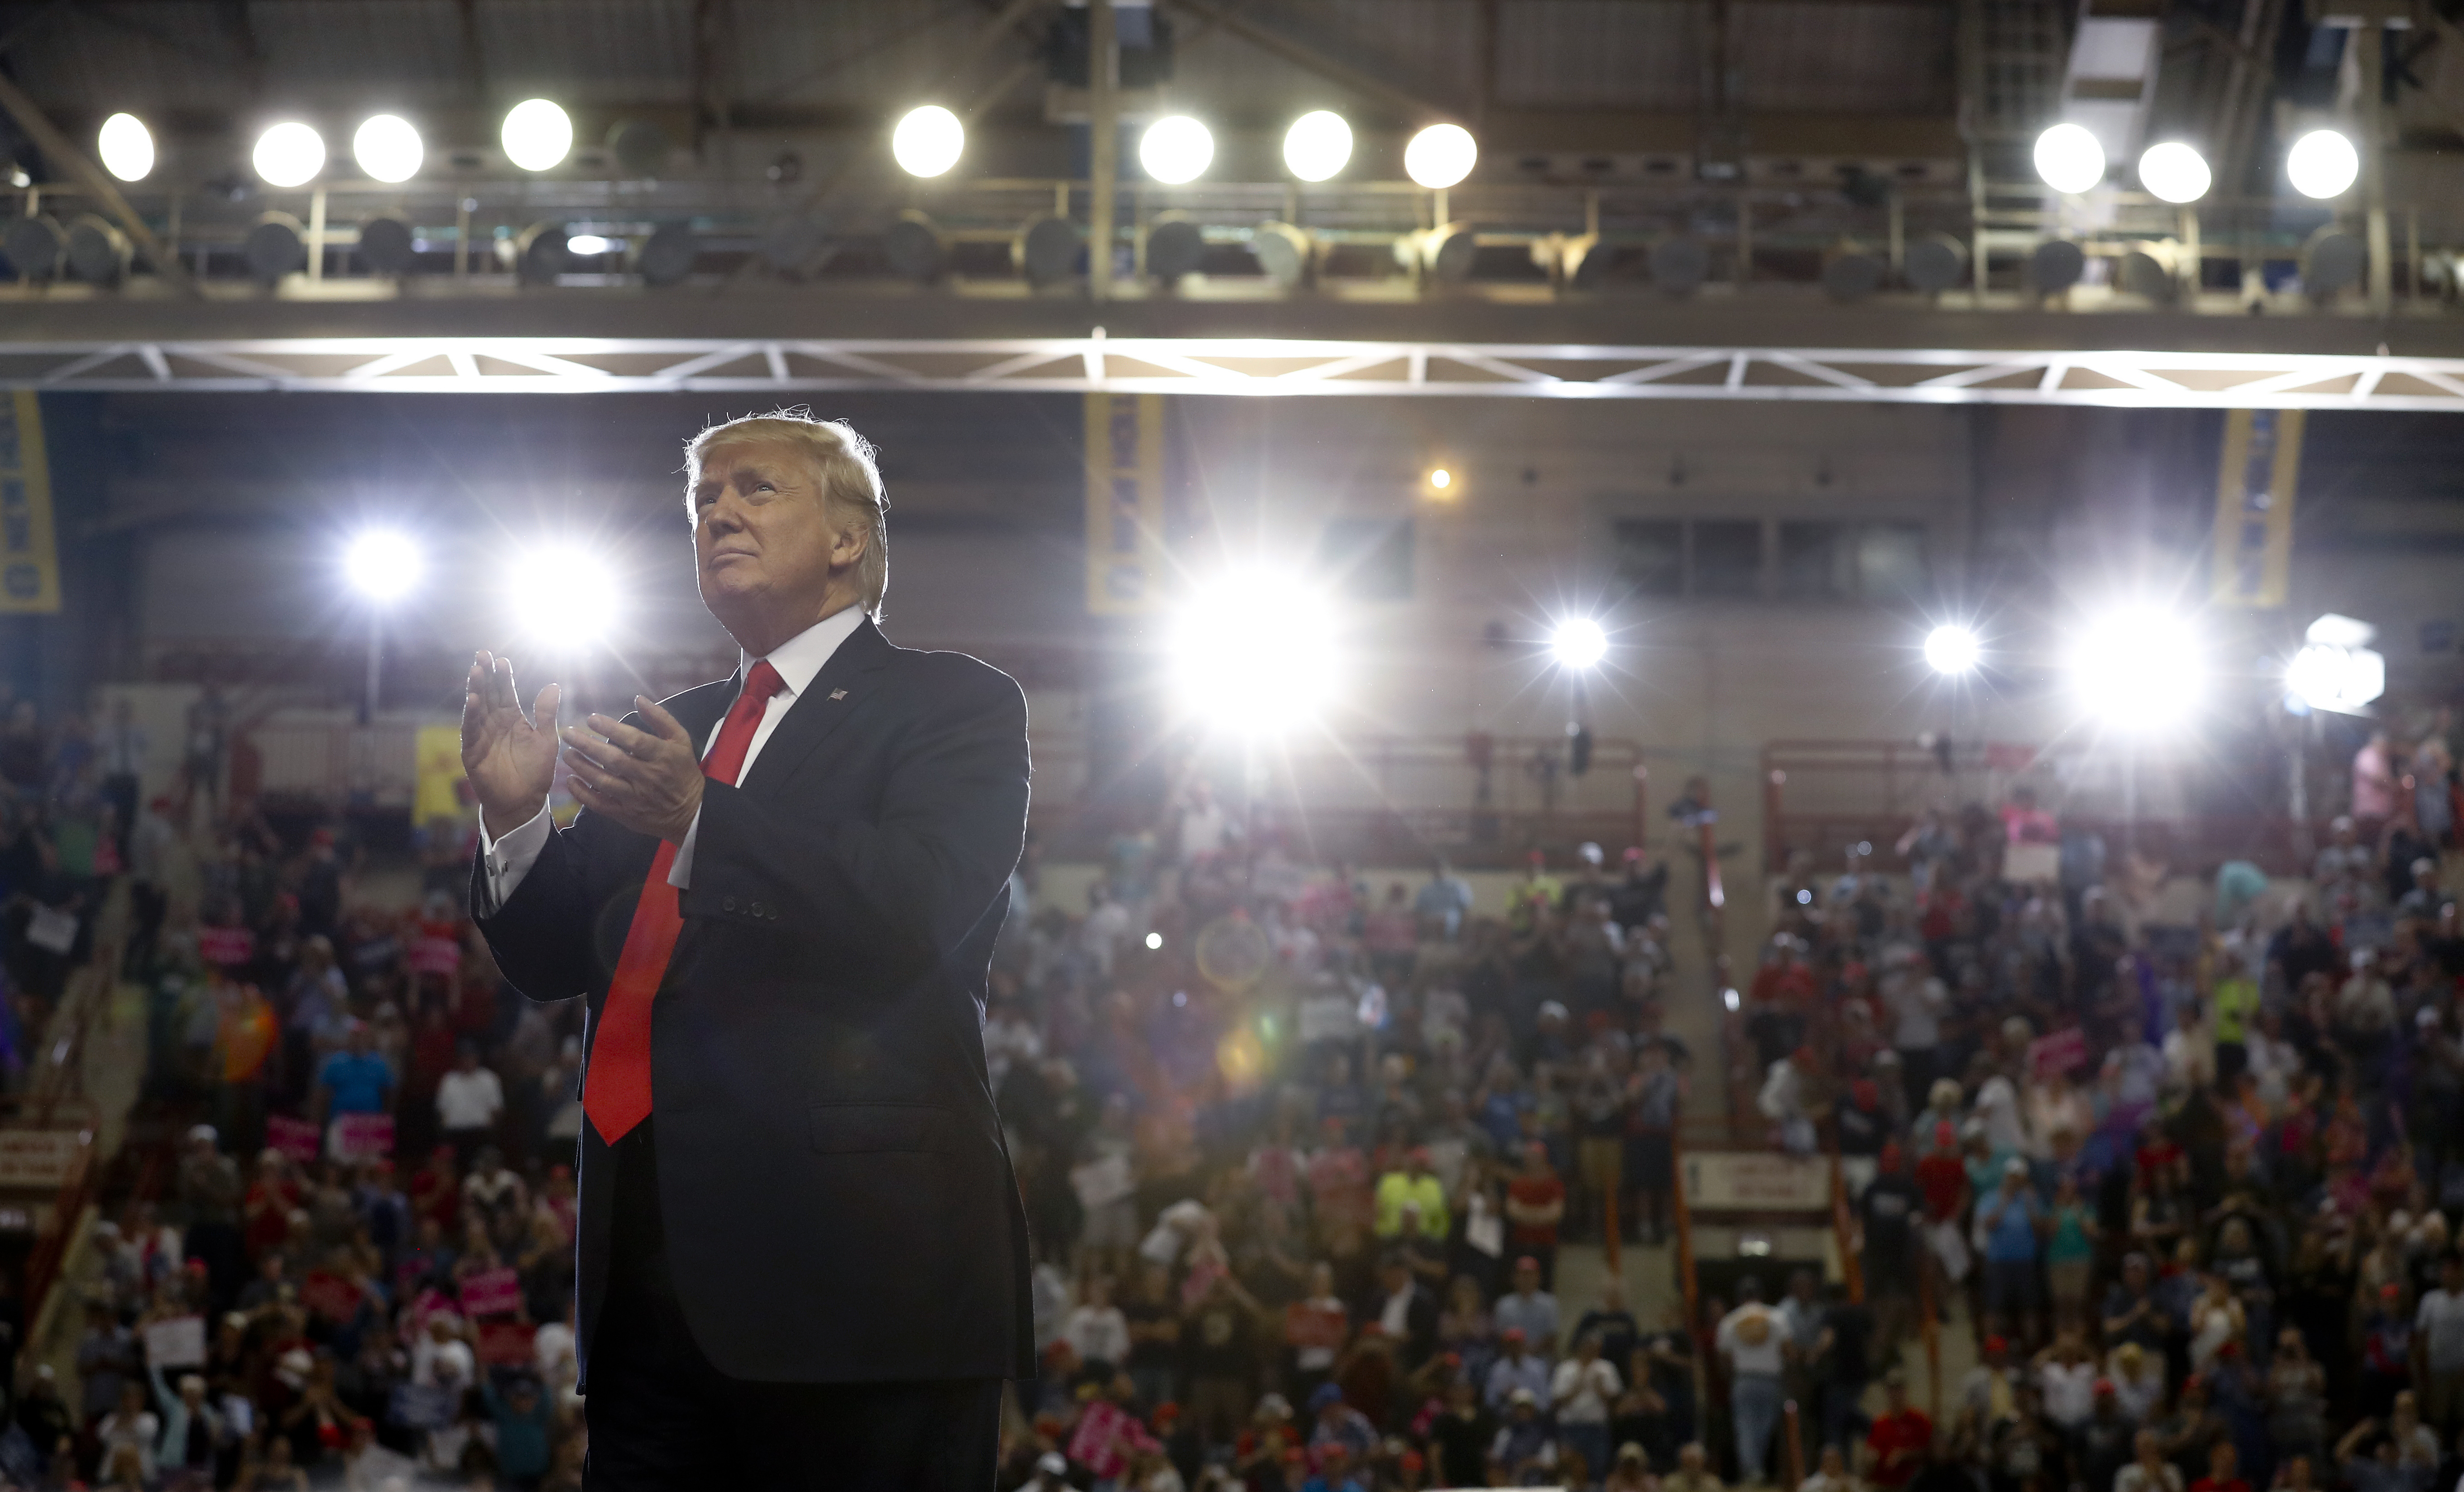 President Donald Trump turns to the audience behind him as he finishes speaking at the Pennsylvania Farm Show Complex and Expo Center in Harrisburg, Pa., Saturday, April, 29, 2017. (AP Photo/Carolyn Kaster)